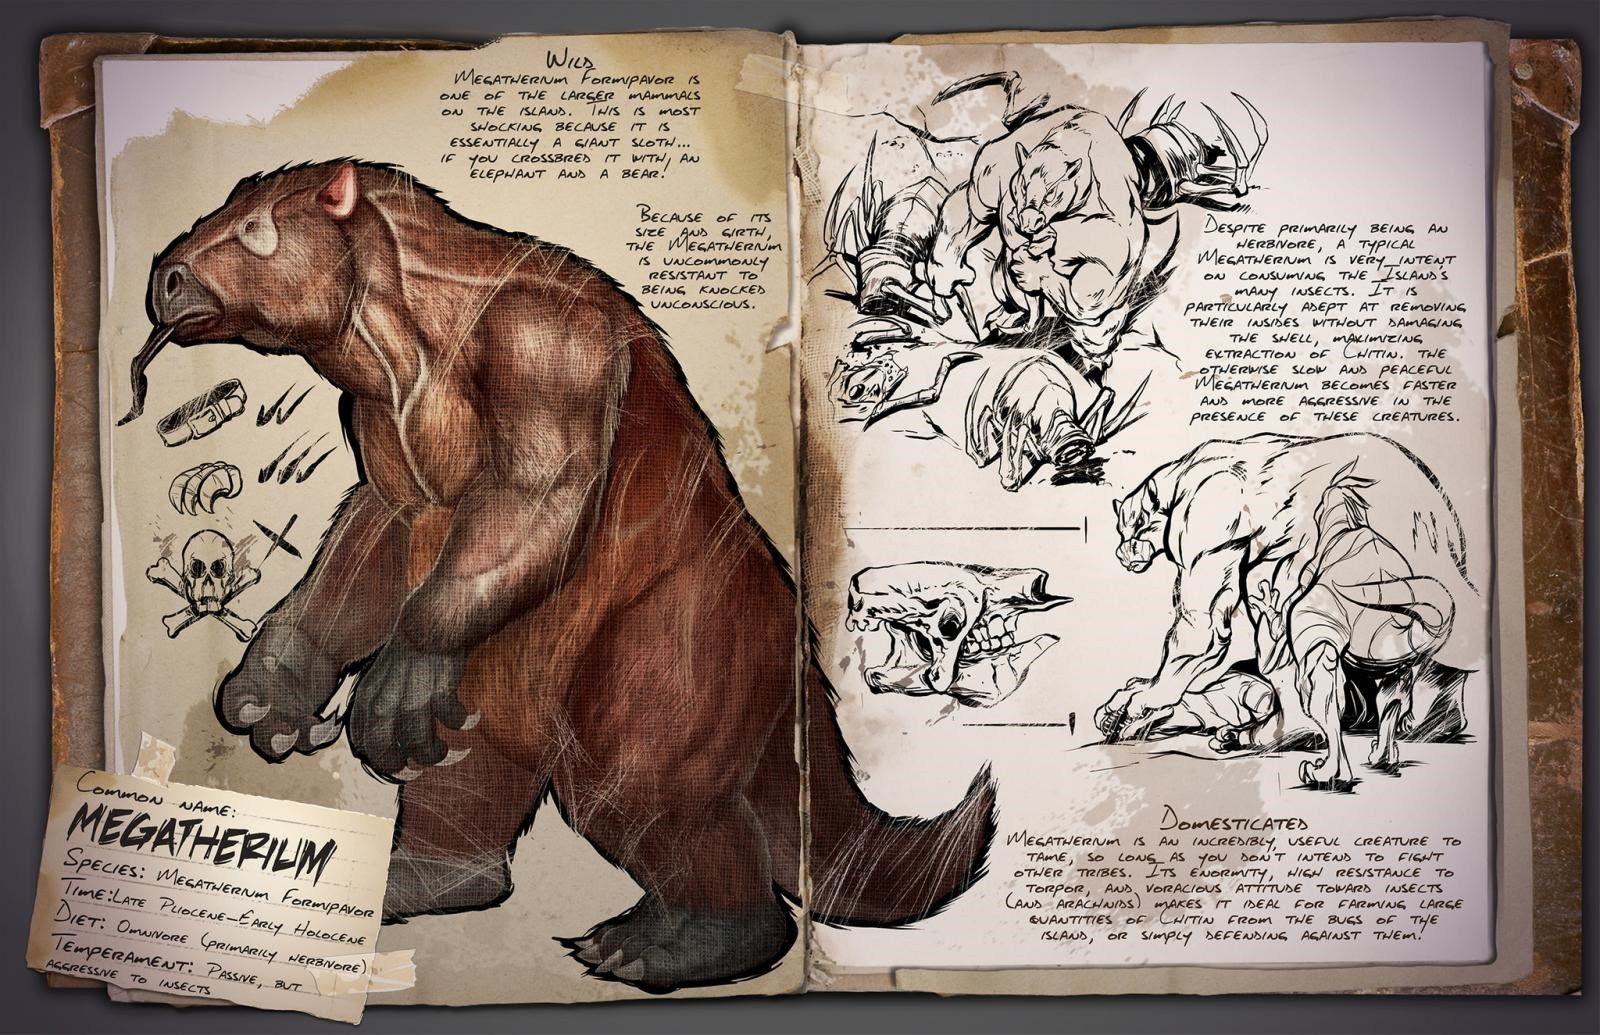 ARK: Survival Evolved - Megatherium